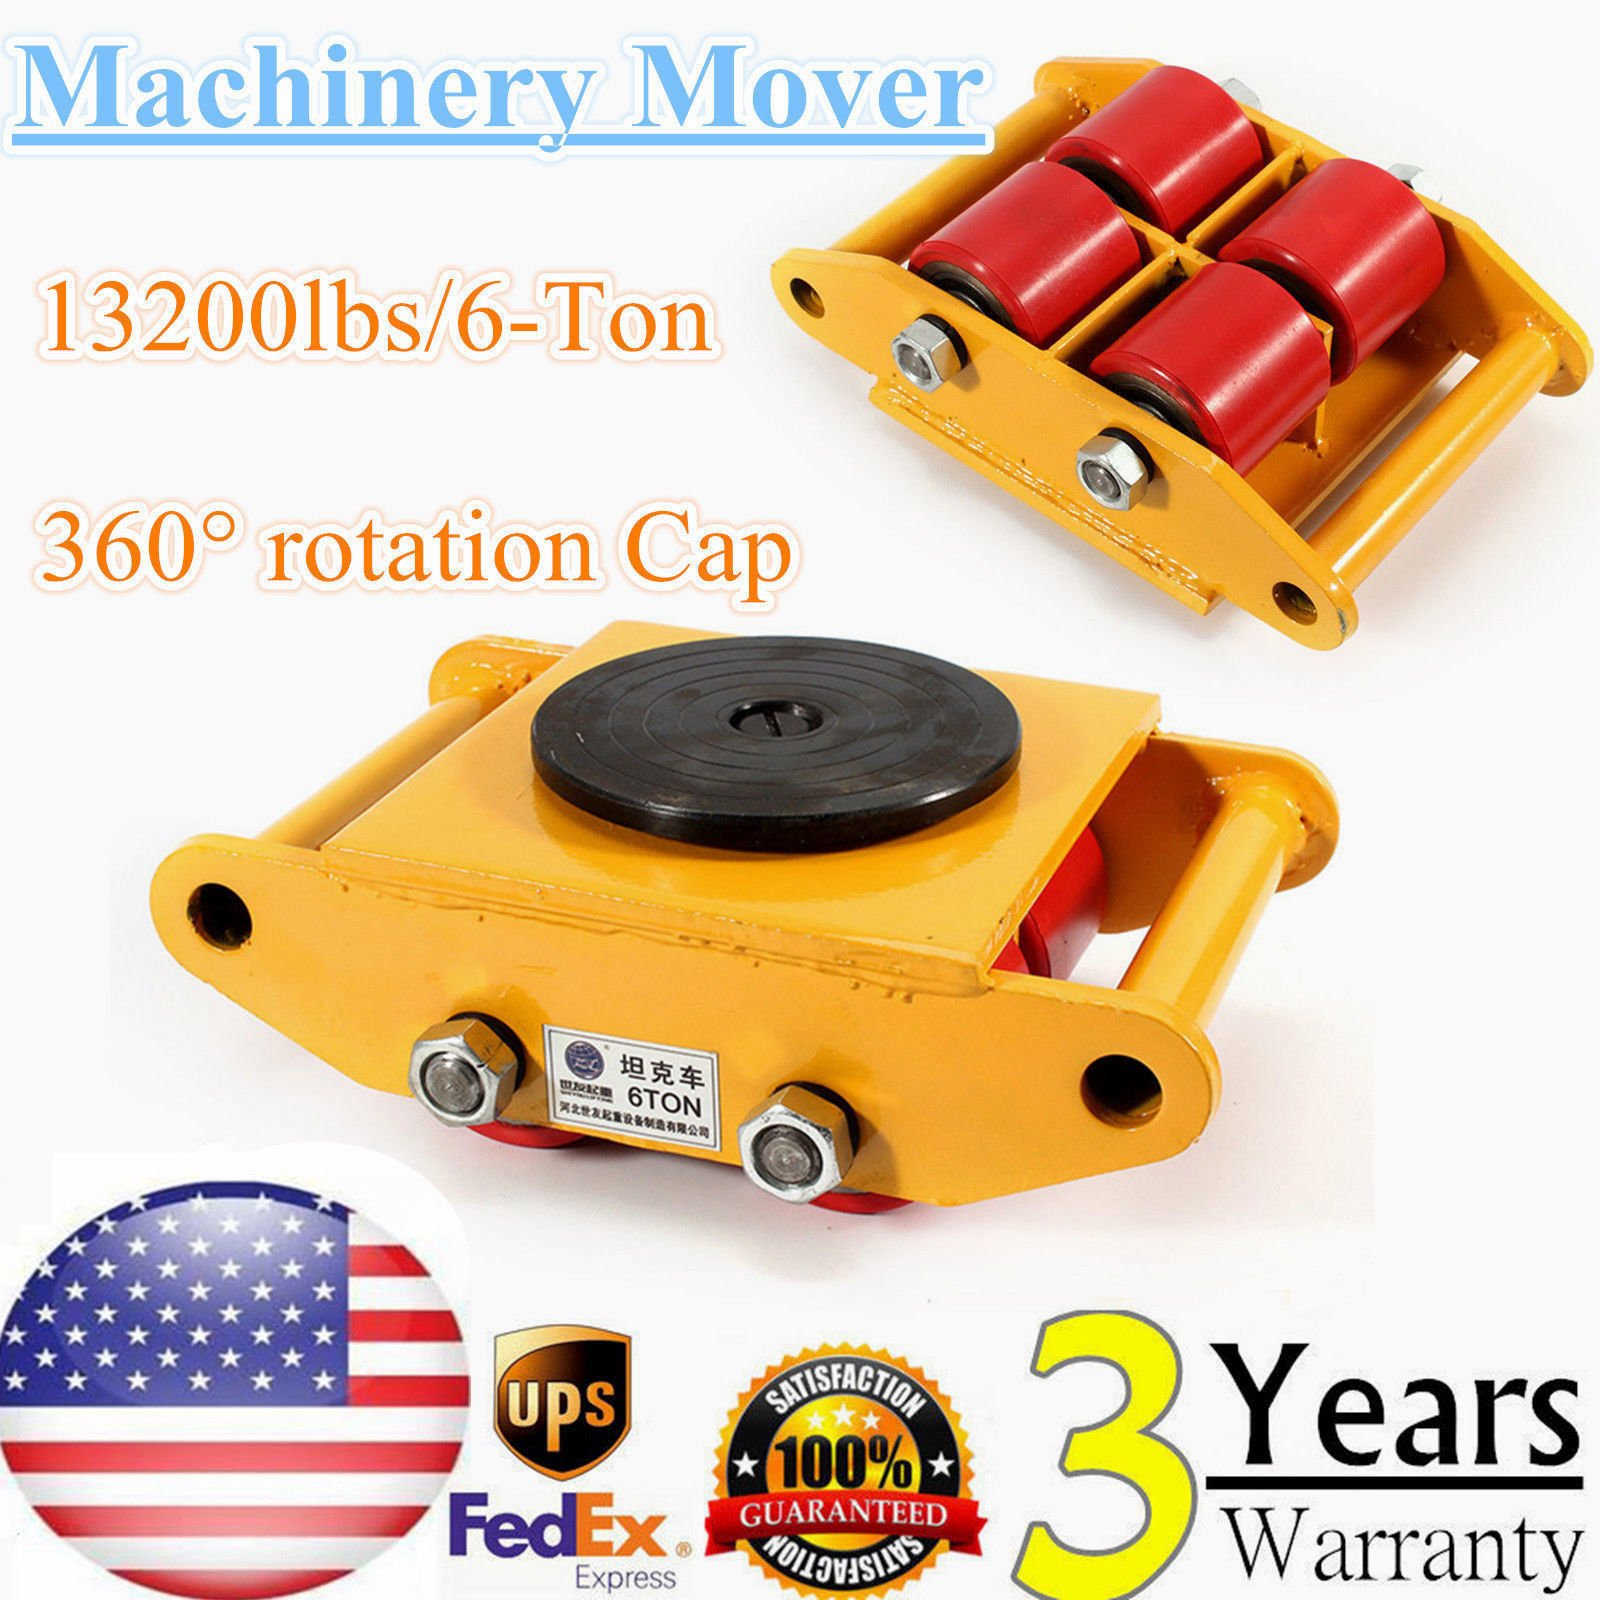 Machinery Mover,360 Degree Rotation Cap 6 Ton Capacity Industrial Dolly Machinery Skate Mover Roller Dolly with 4 Polyurethane wheels (Yellow) by NOPTEG (Image #3)